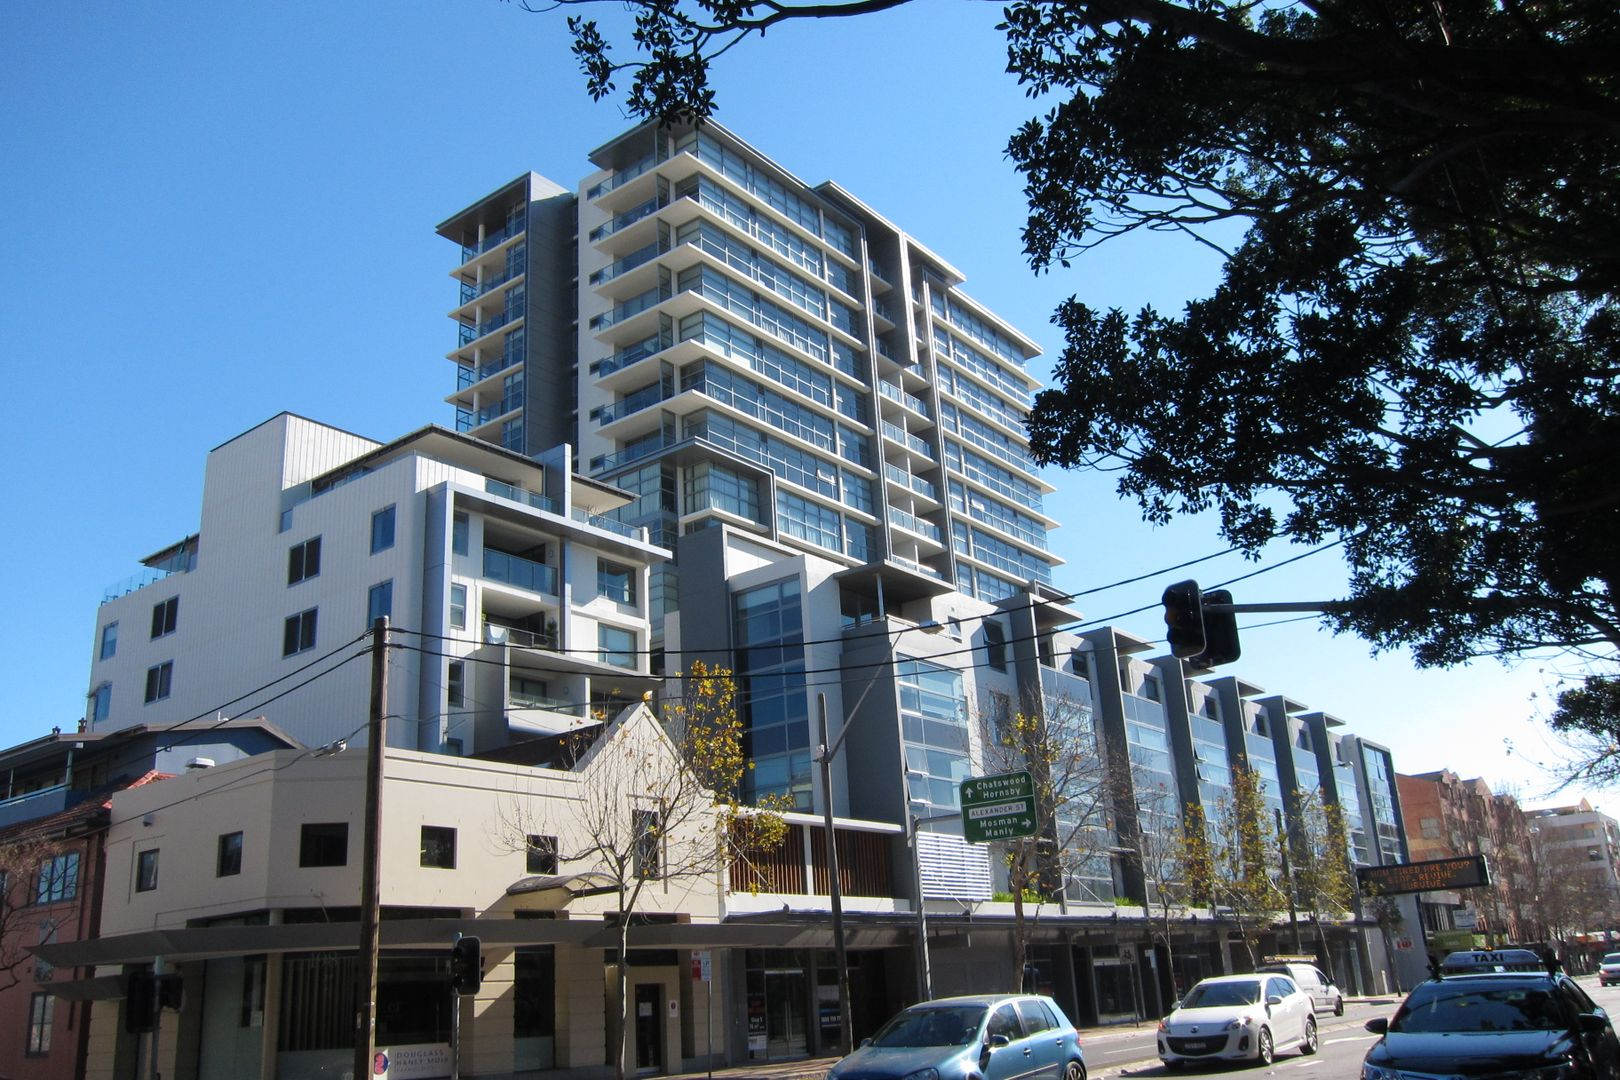 1 bedrooms Apartment / Unit / Flat in 220 Pacific Highway CROWS NEST NSW, 2065